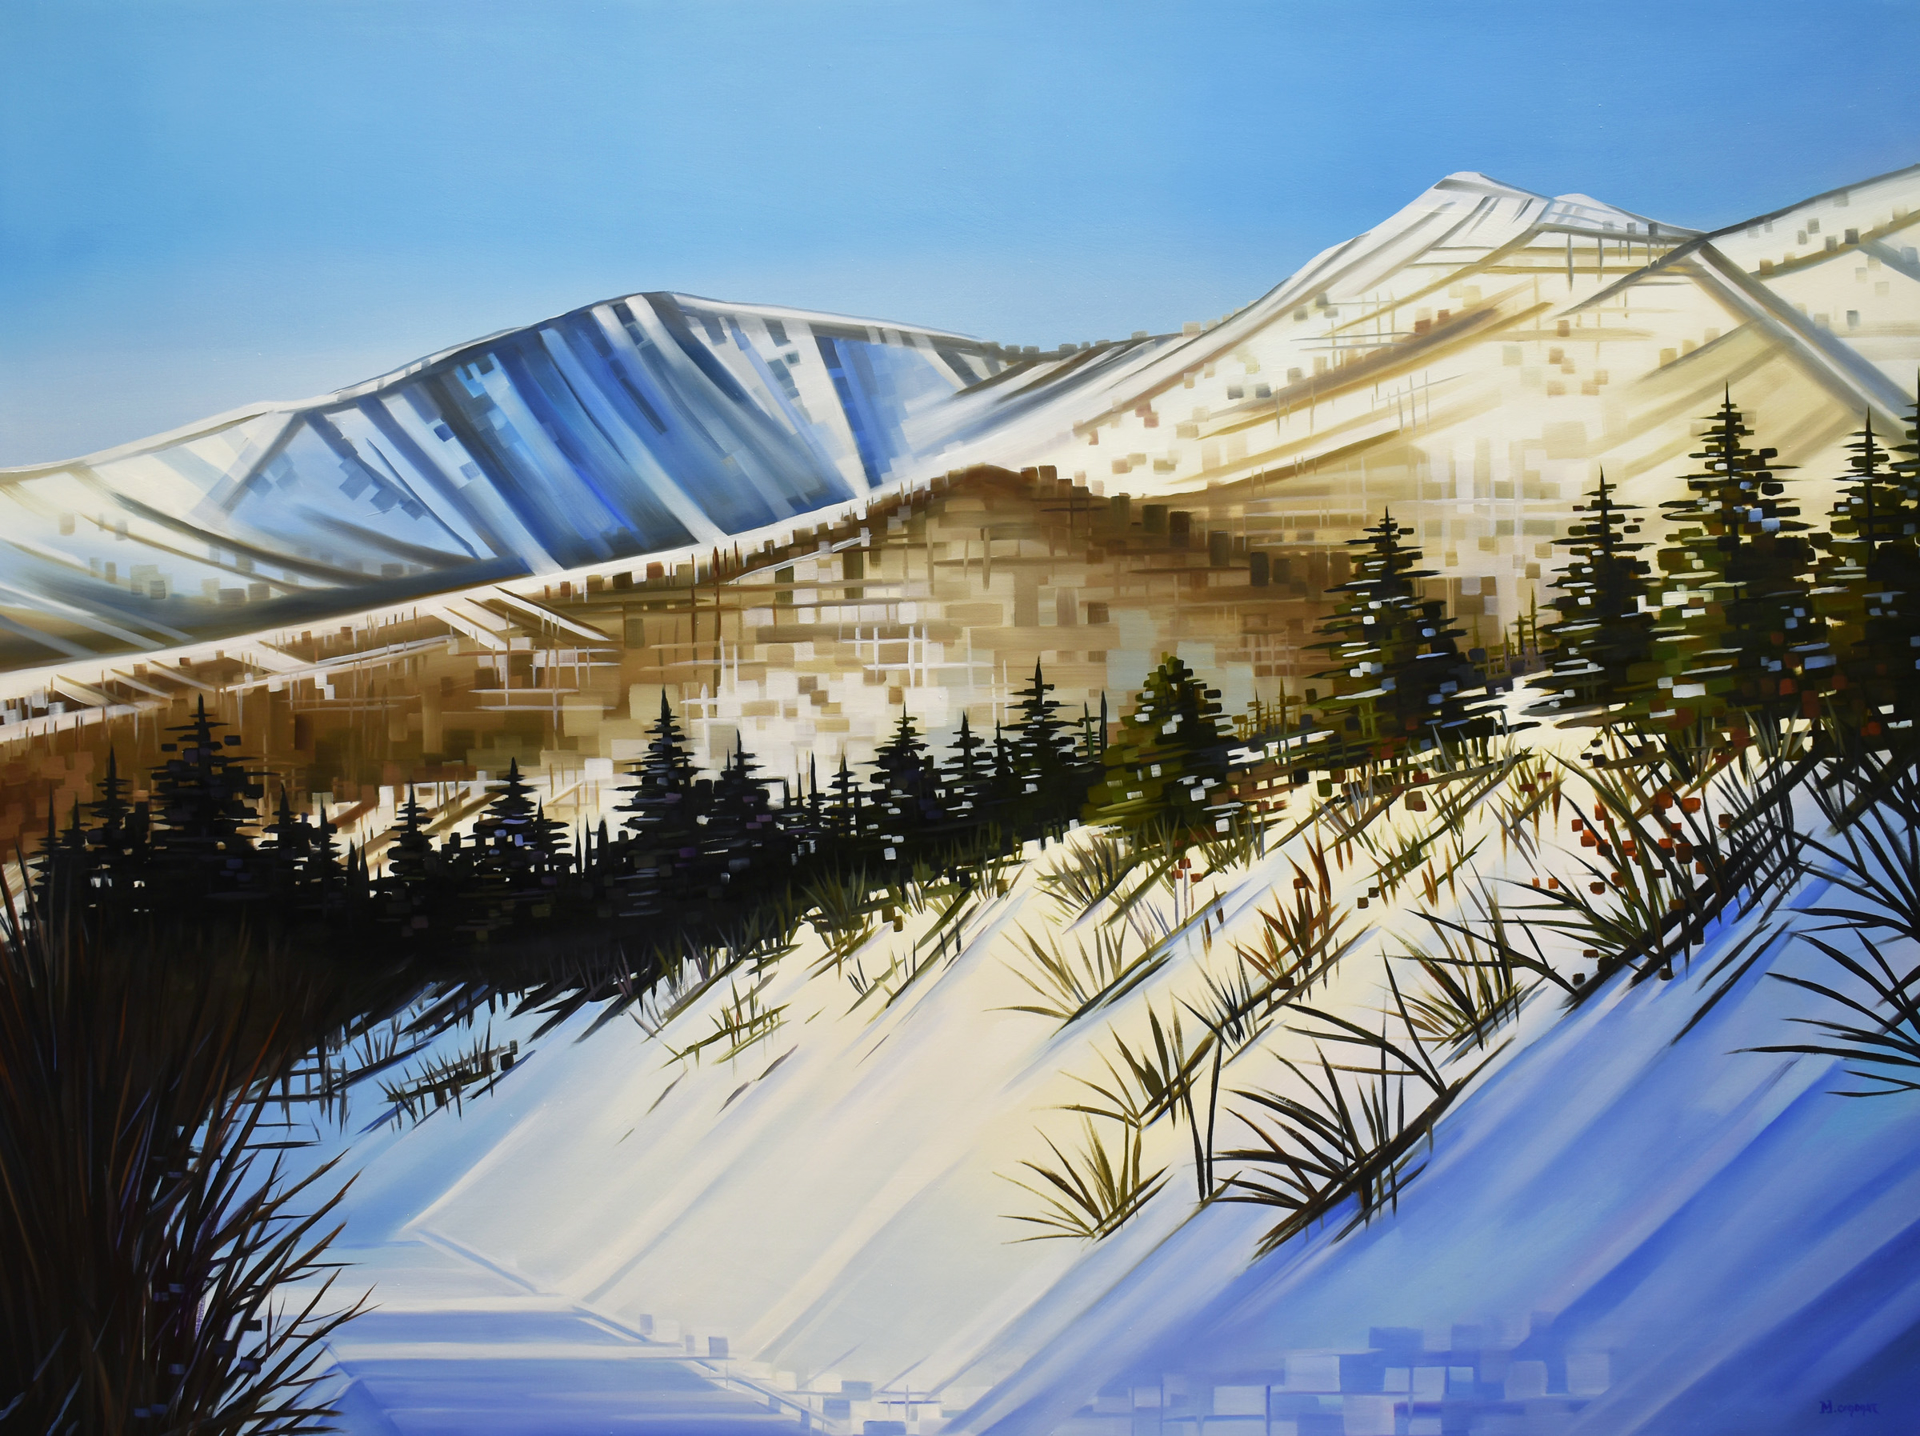 Sunny Side Slopes by Michelle Condrat